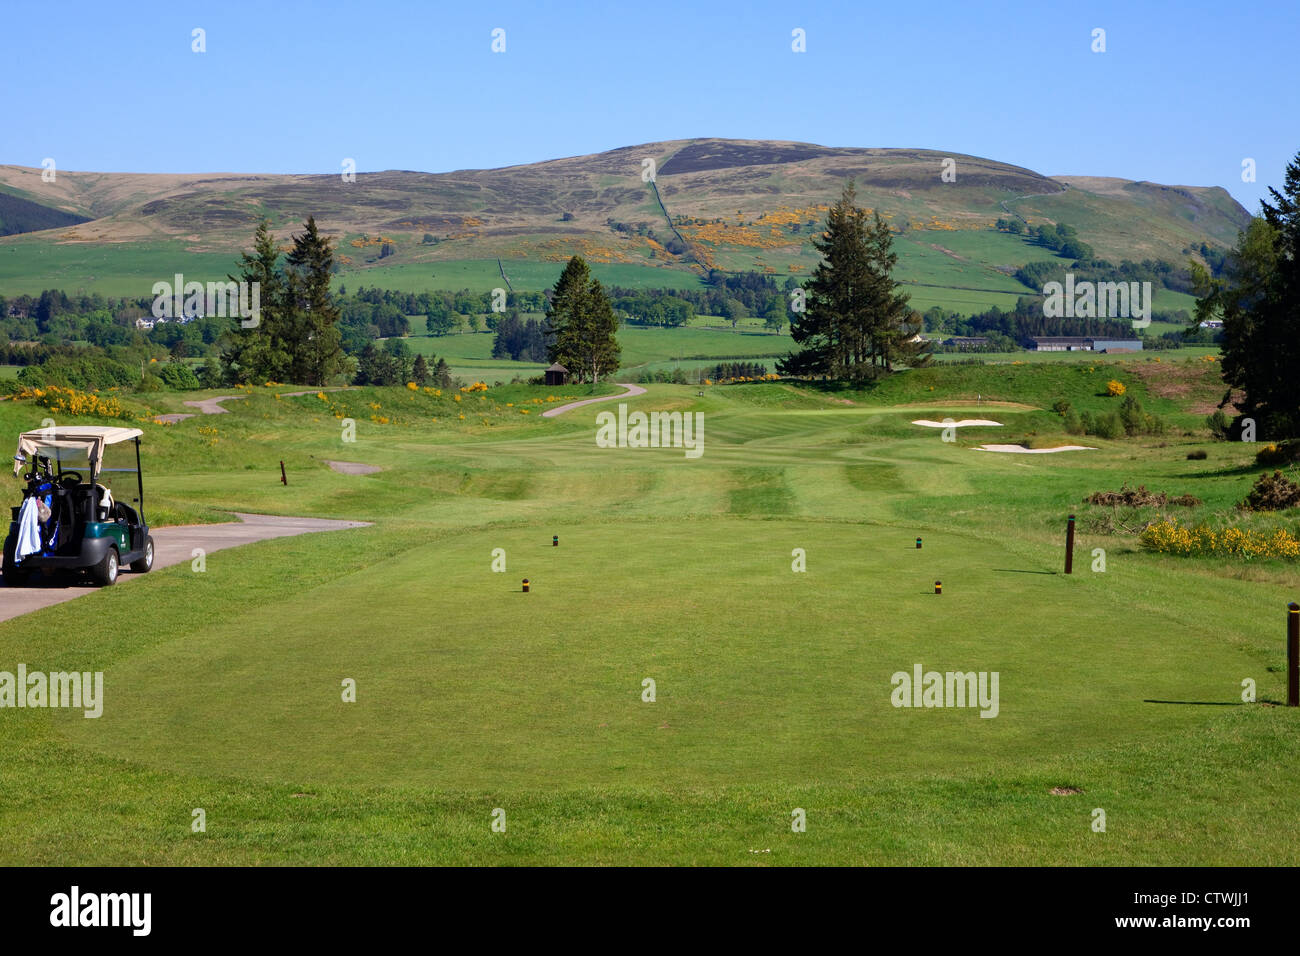 First tee on the PGA course at Gleneagles Golf Club, Perthshire, Scotland, UK. This is the course for the Ryder - Stock Image